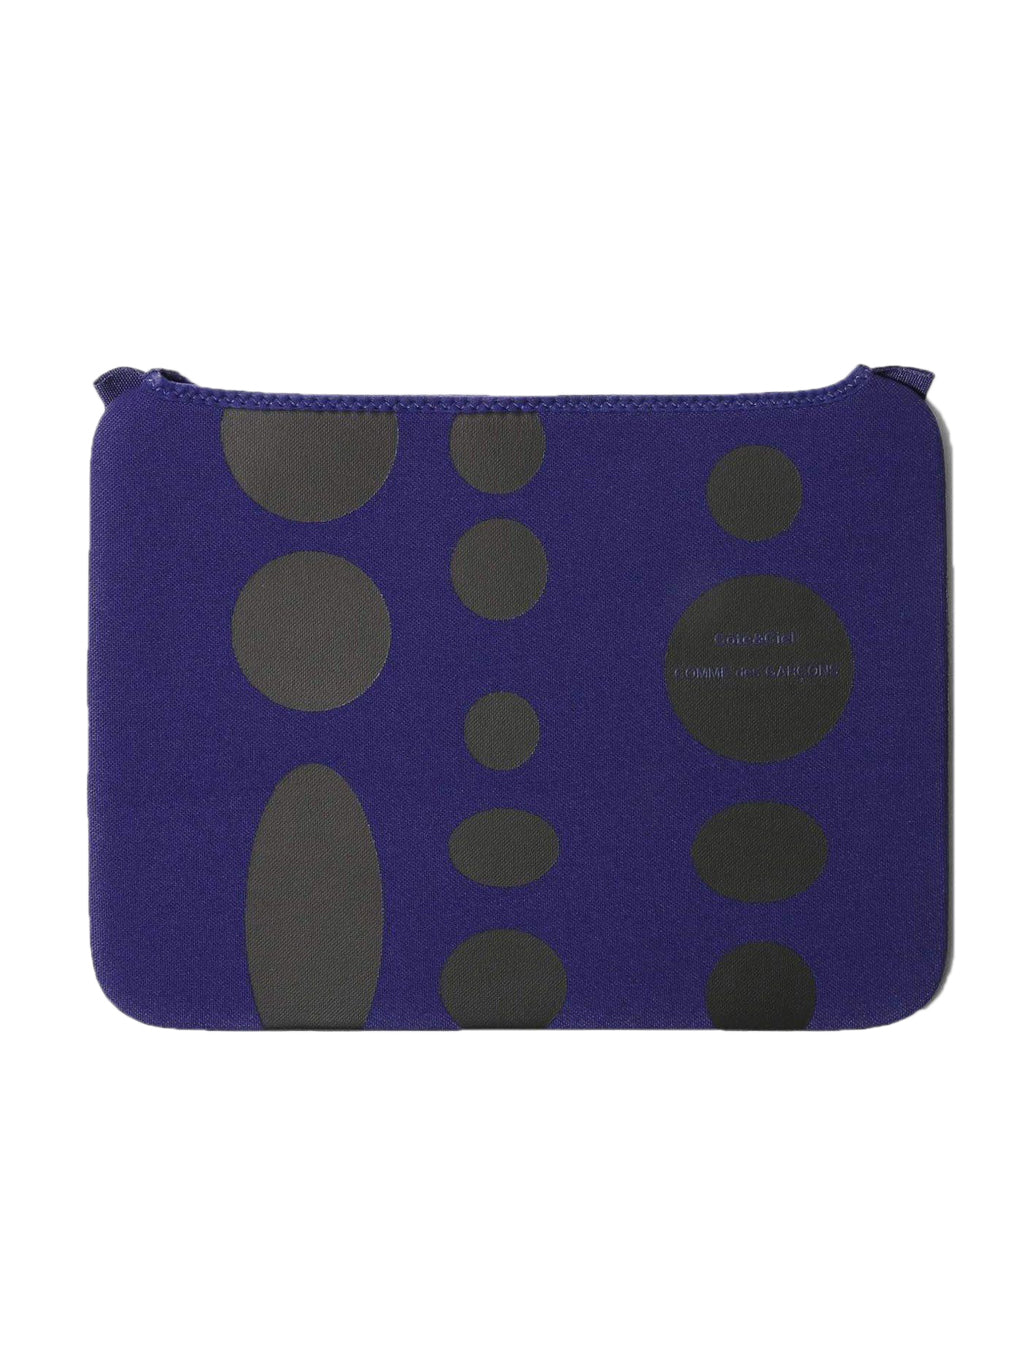 Blue Macbook Air 11 Case